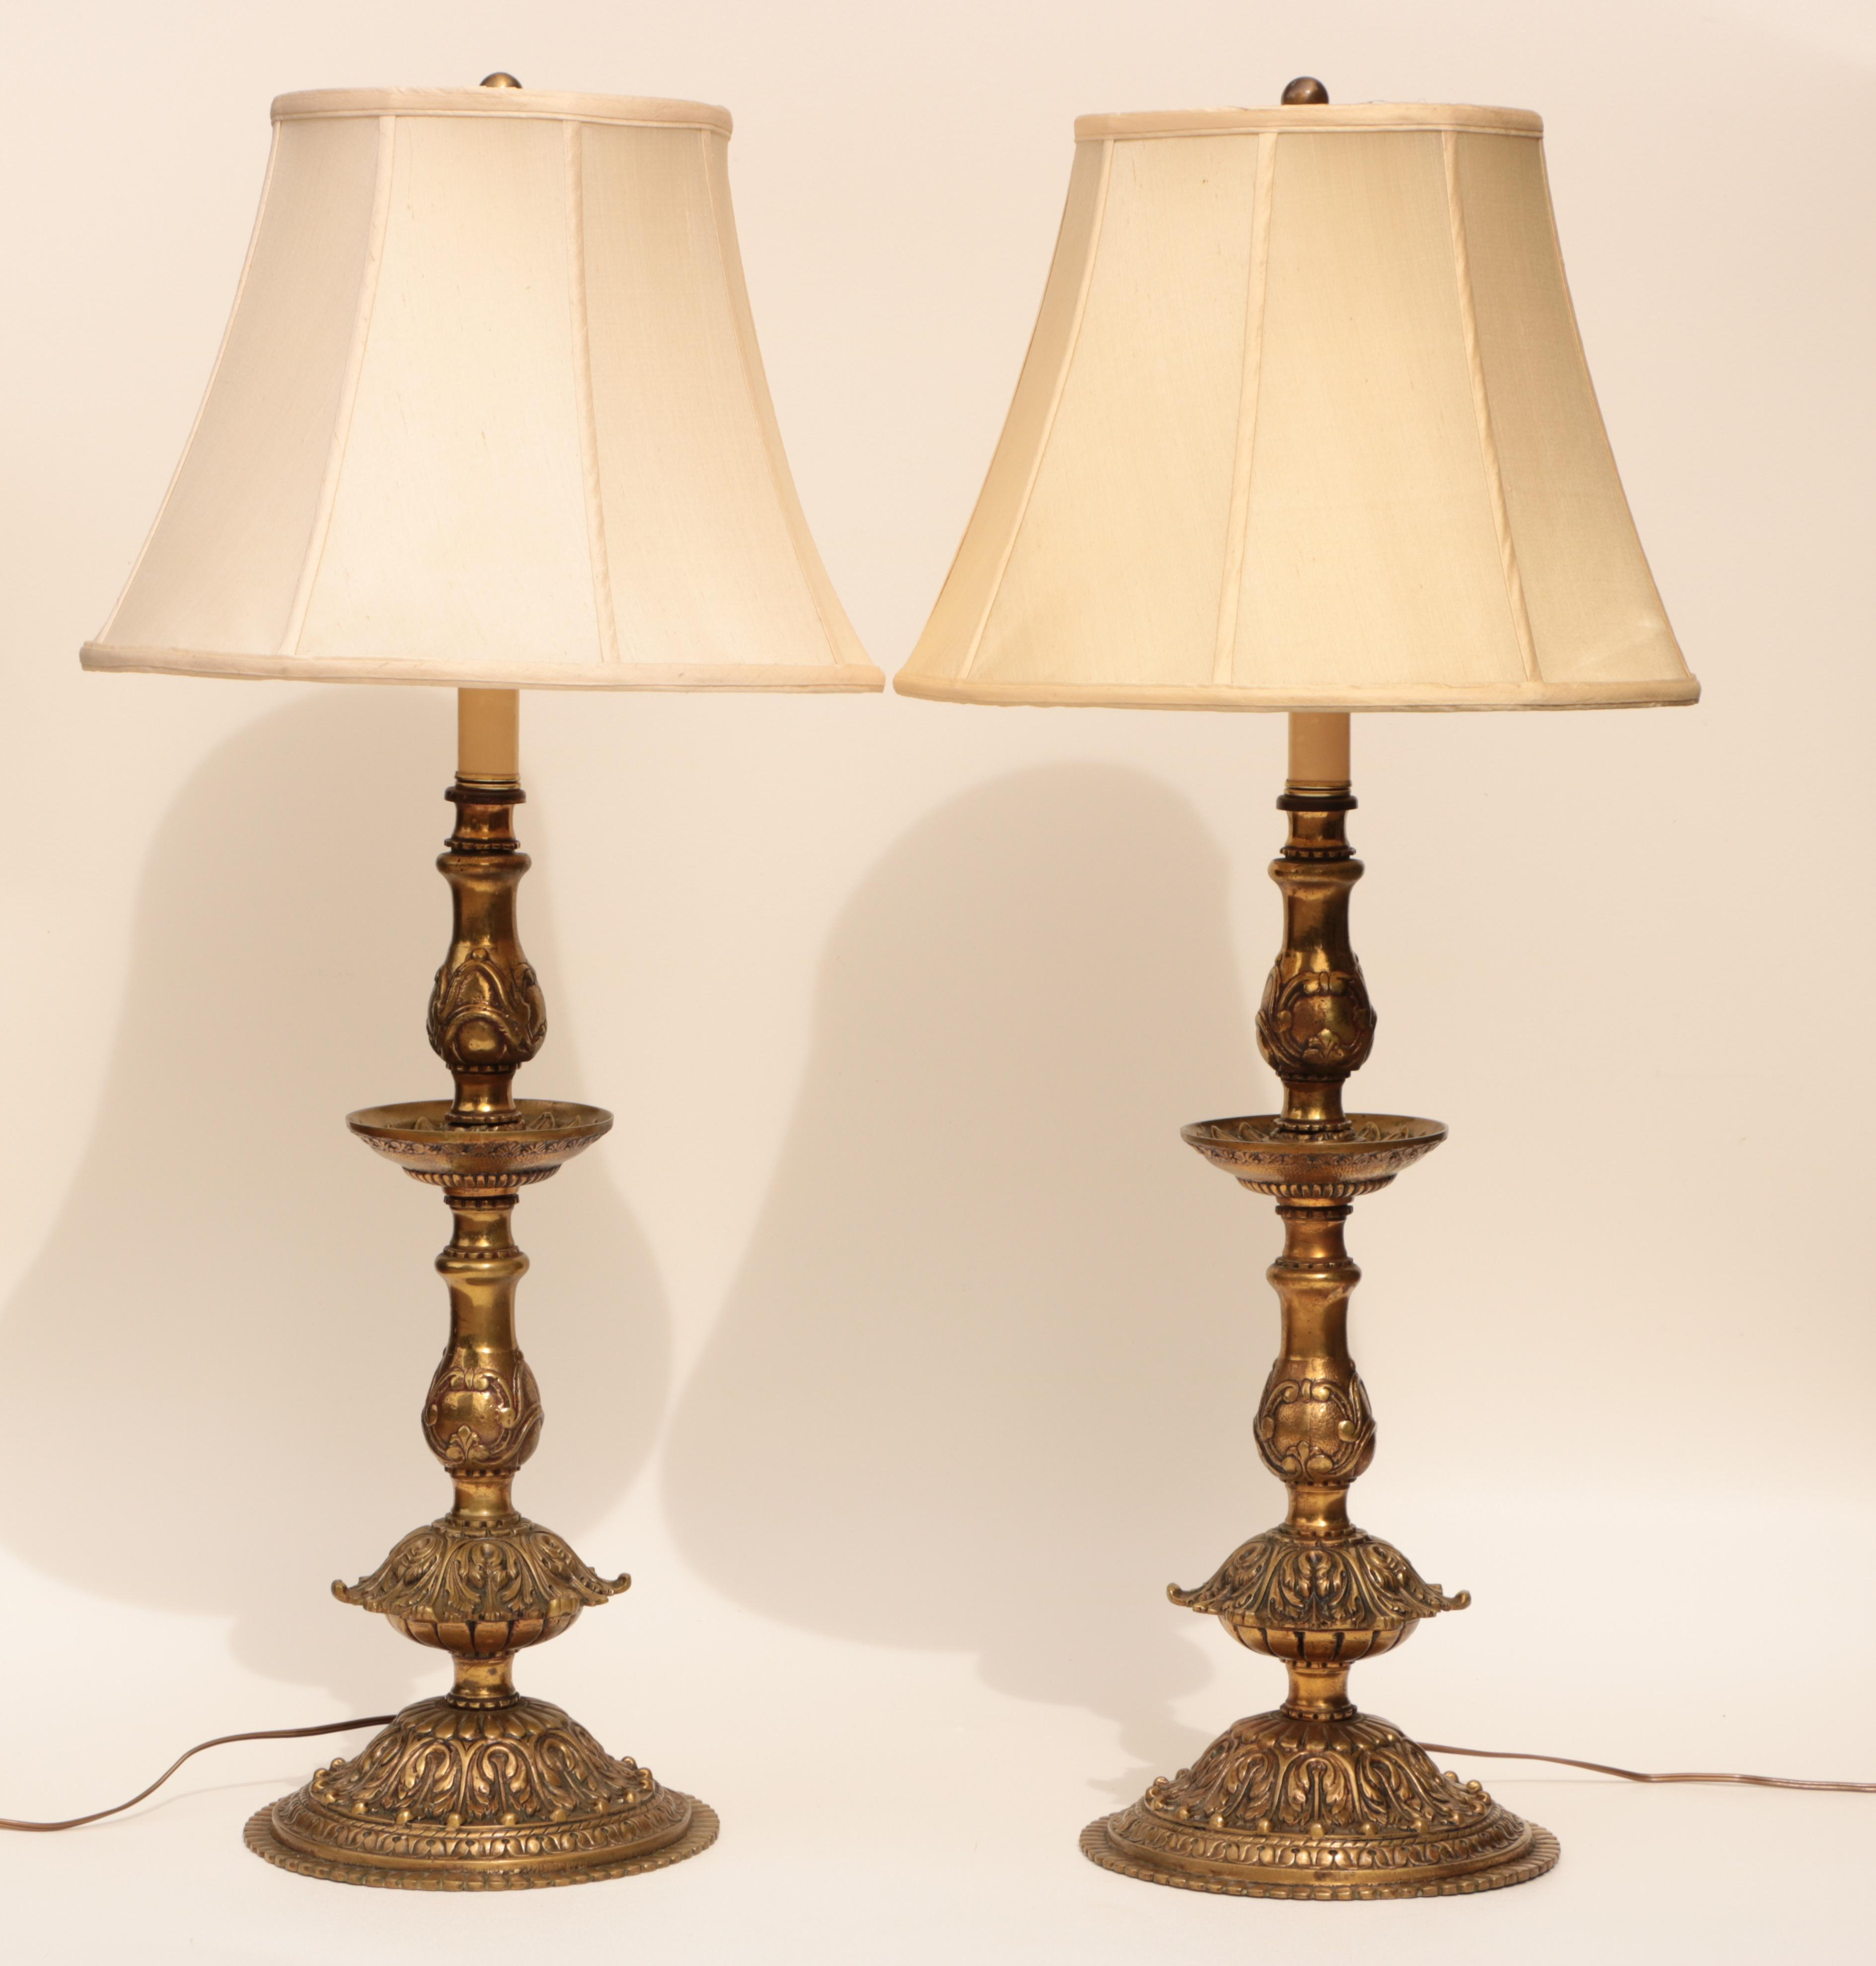 French doré bronze candlestick lamps a pair image 2 of 11